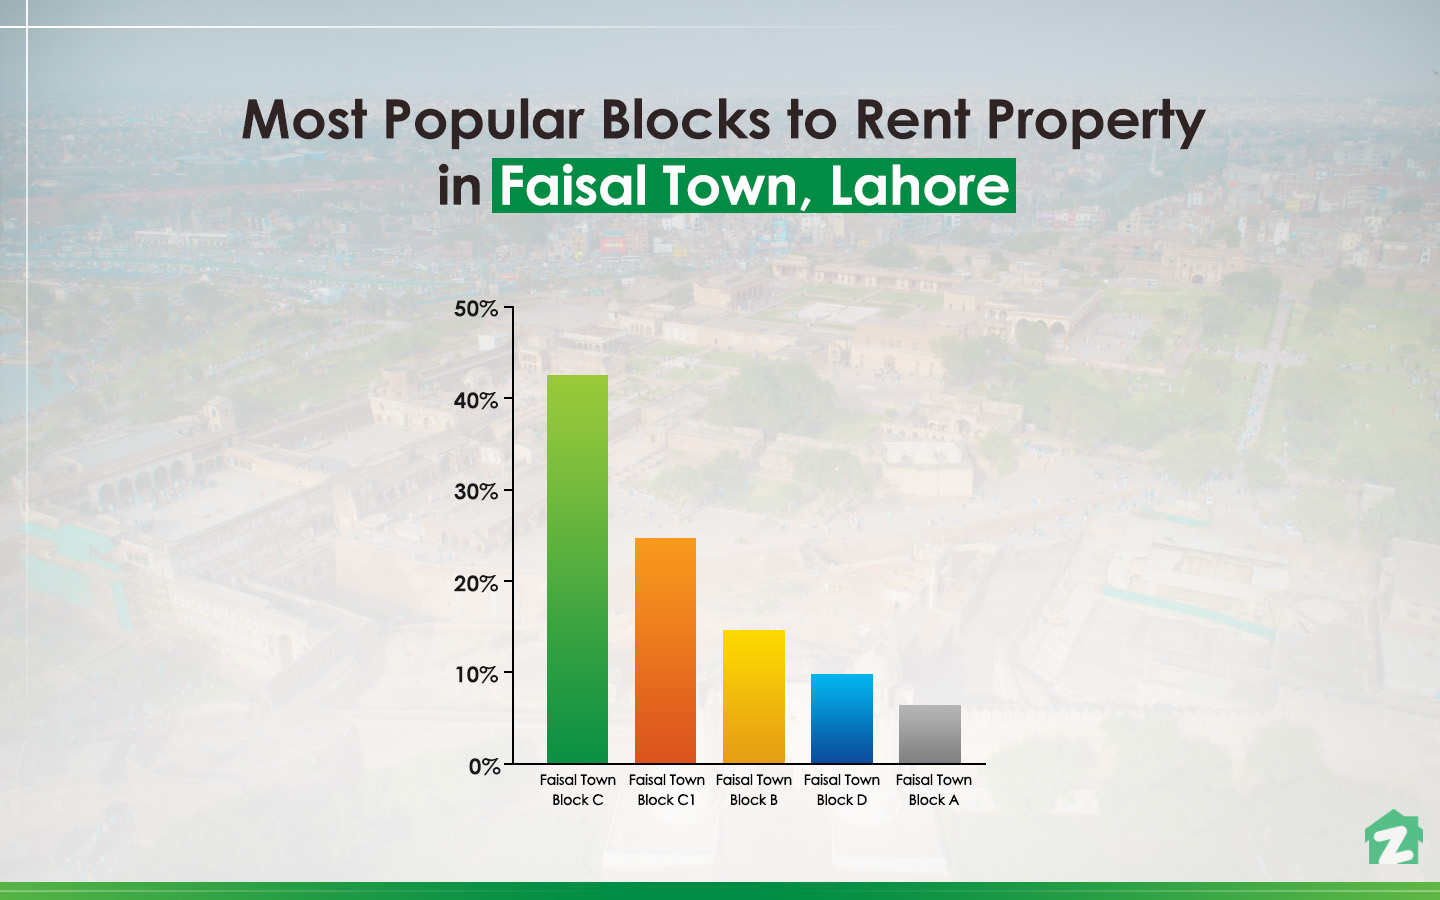 Most Popular Blocks to Rent Property in Faisal Town, Lahore